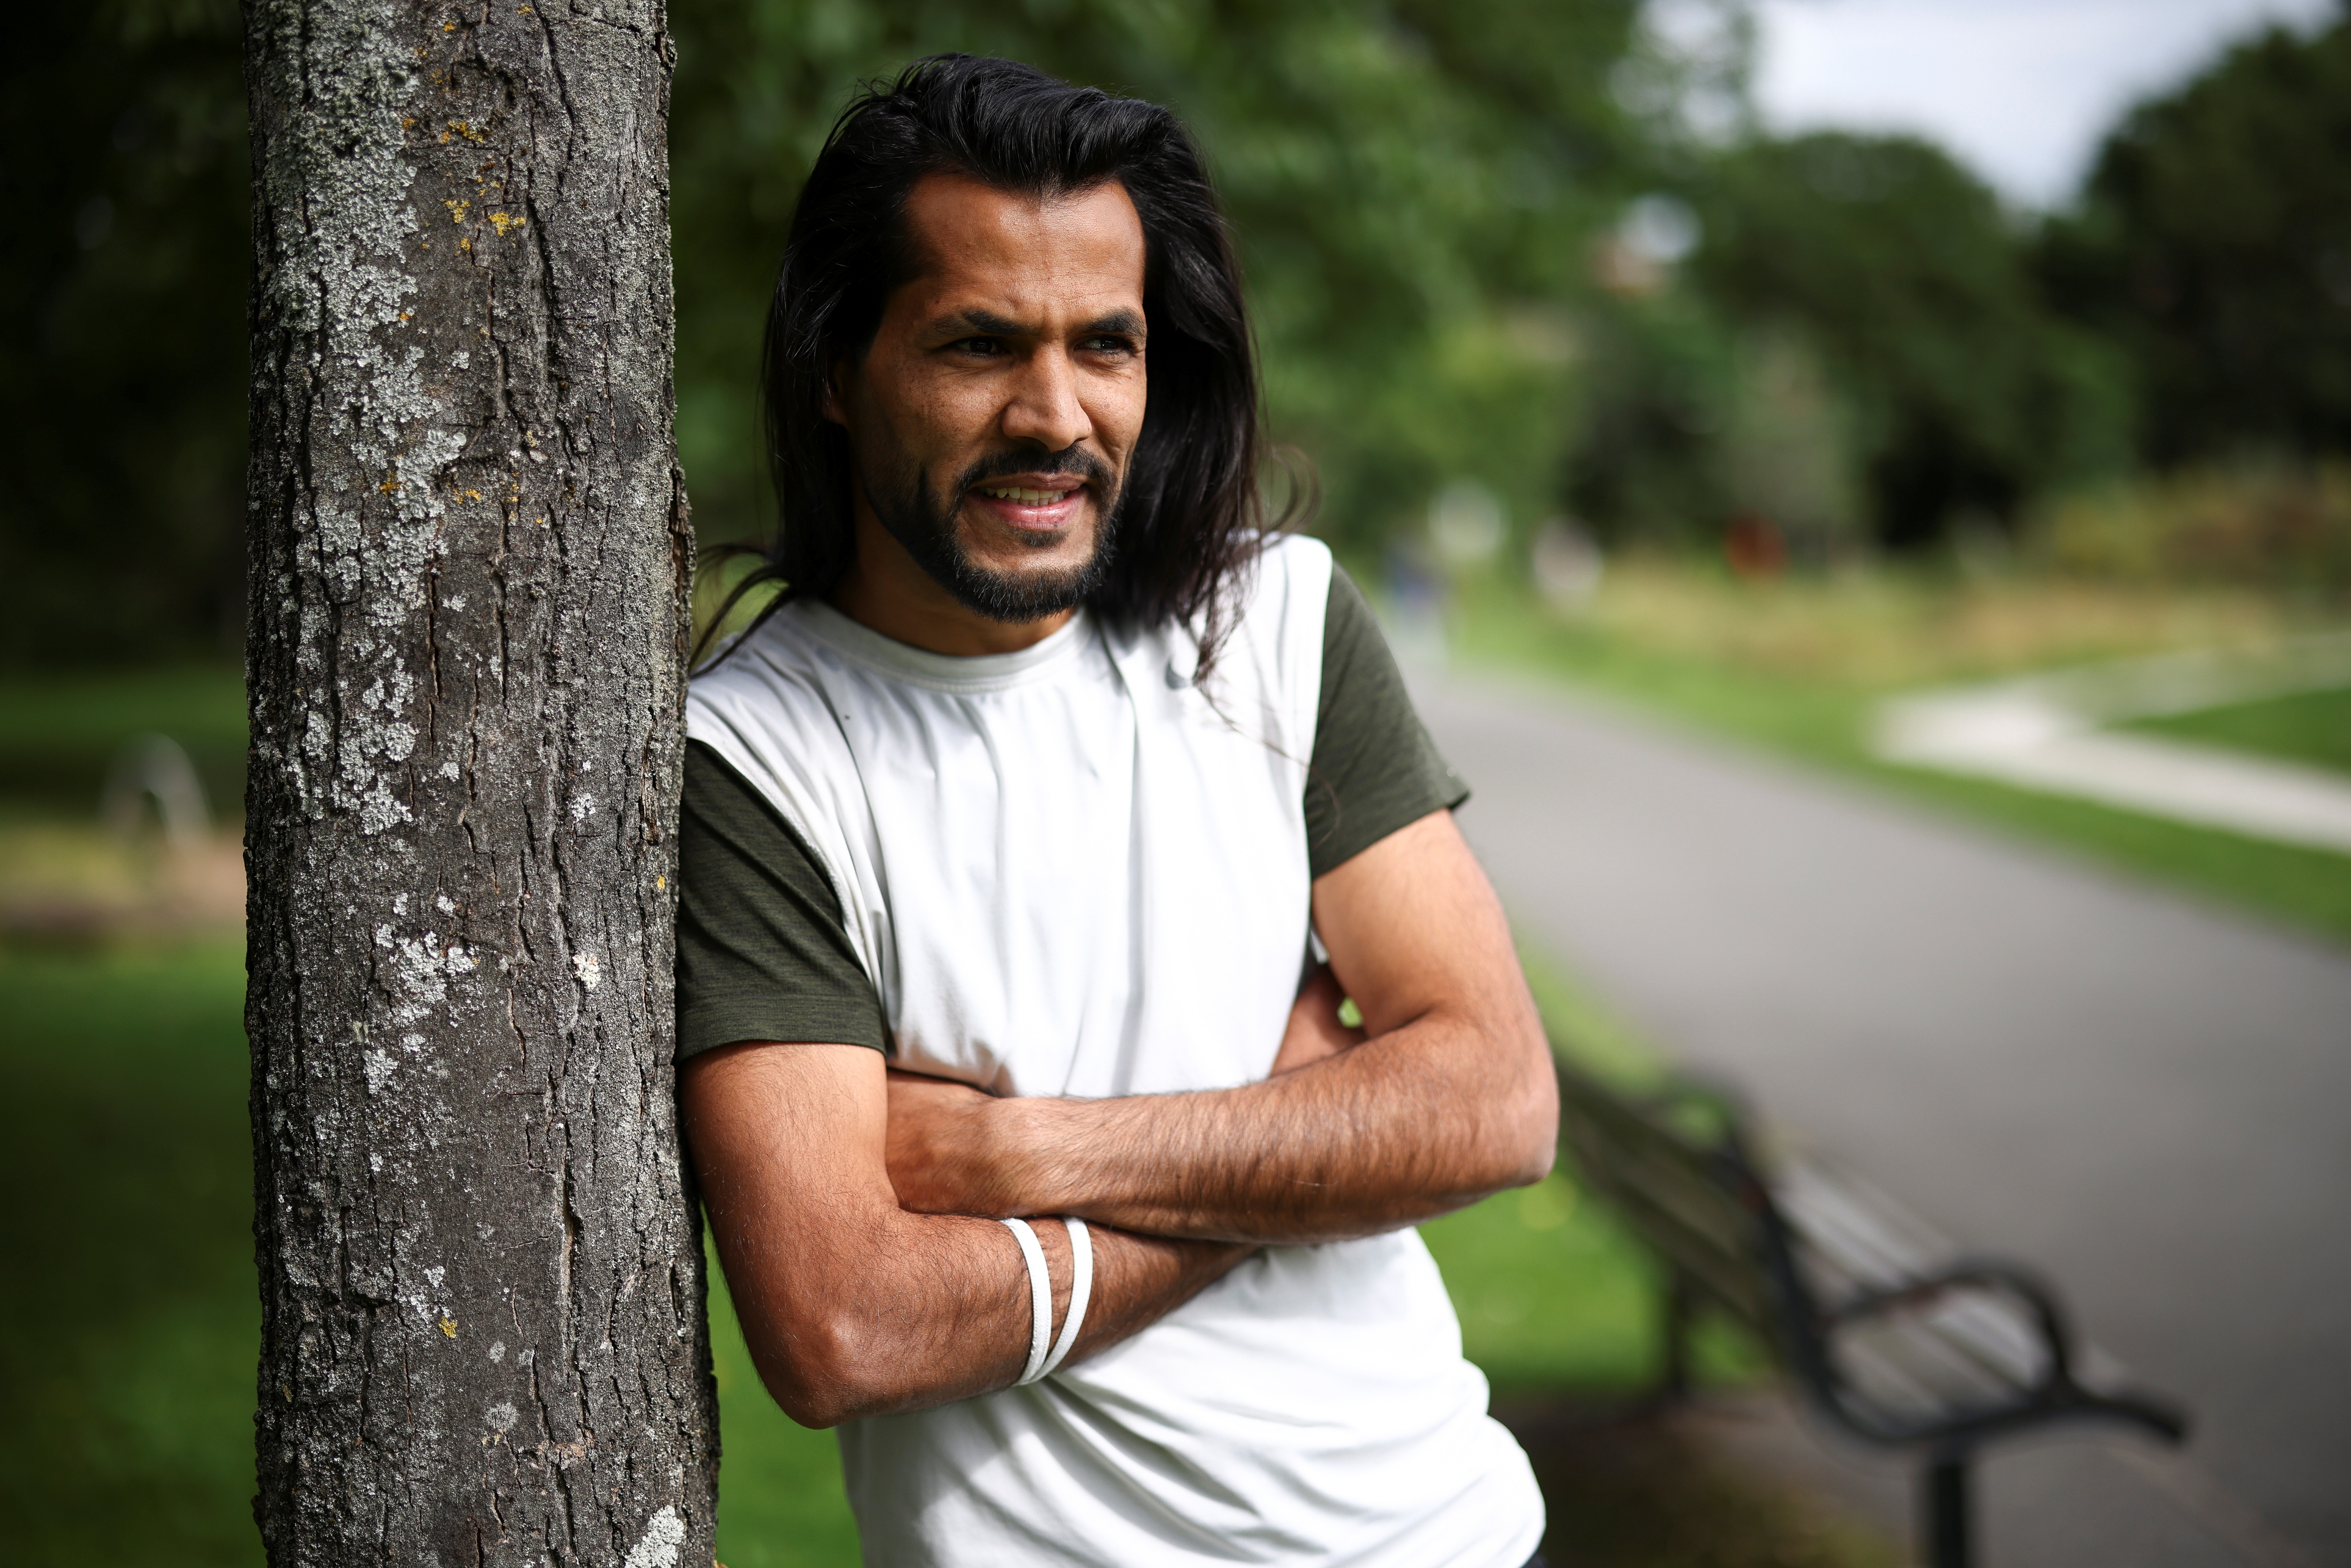 Abdullah al Badri, from Kuwait, who is currently seeking asylum in the United Kingdom, poses during an interview with Reuters in London, Britain, July 27, 2021. Picture taken July 27, 2021. REUTERS/Henry Nicholls